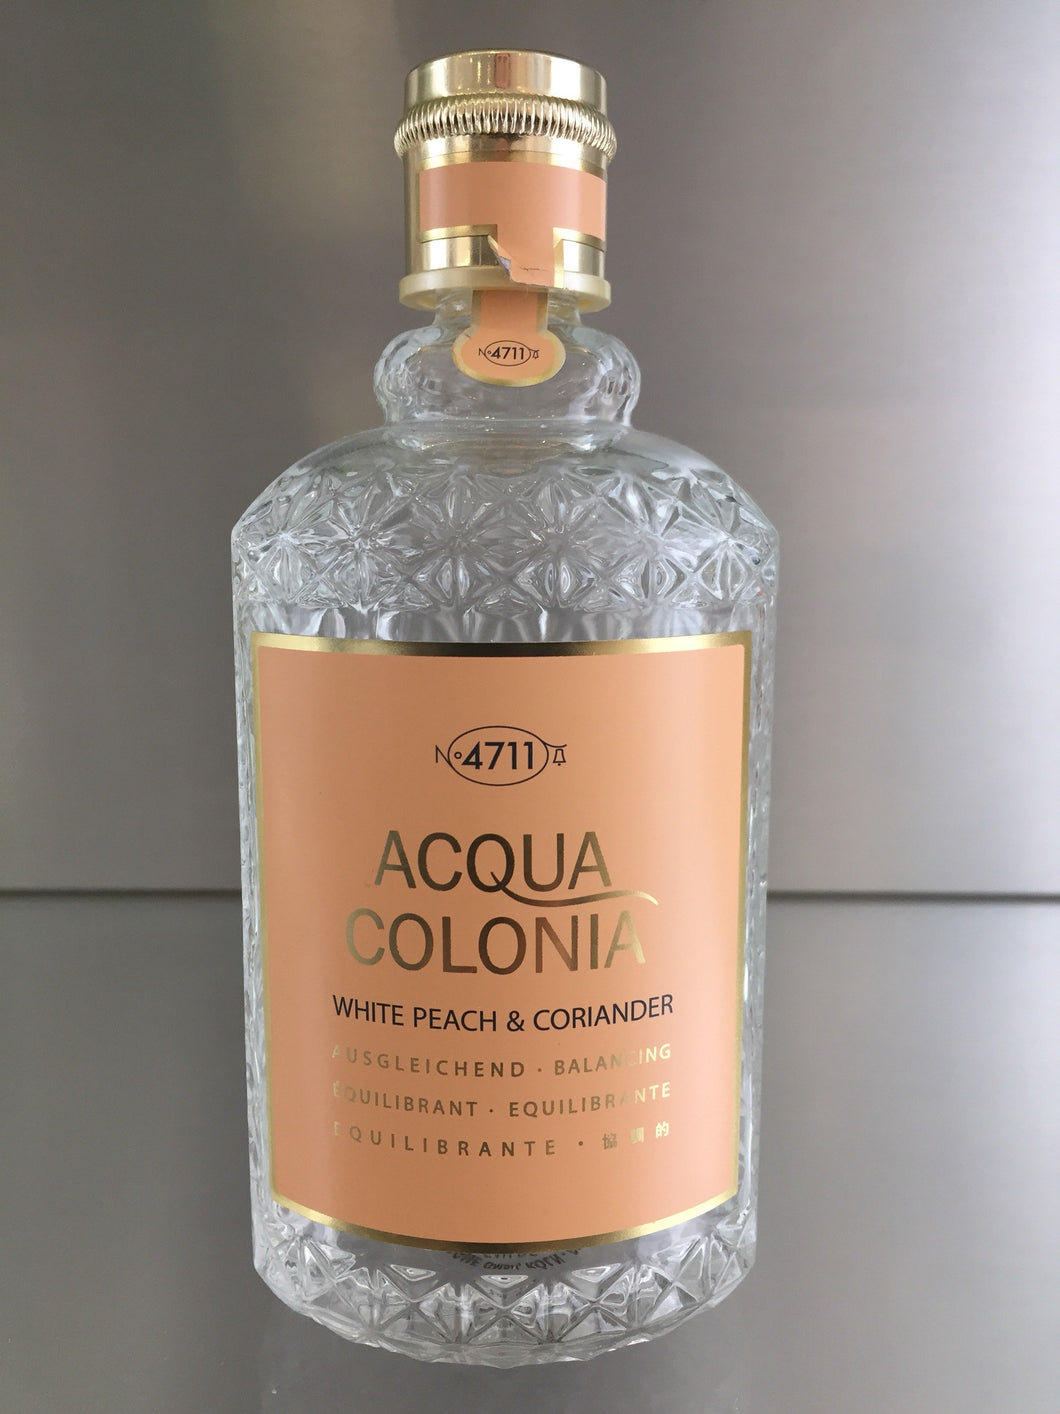 4711 Acqua Colonia White Peach & Coriander - 170ml - 4711